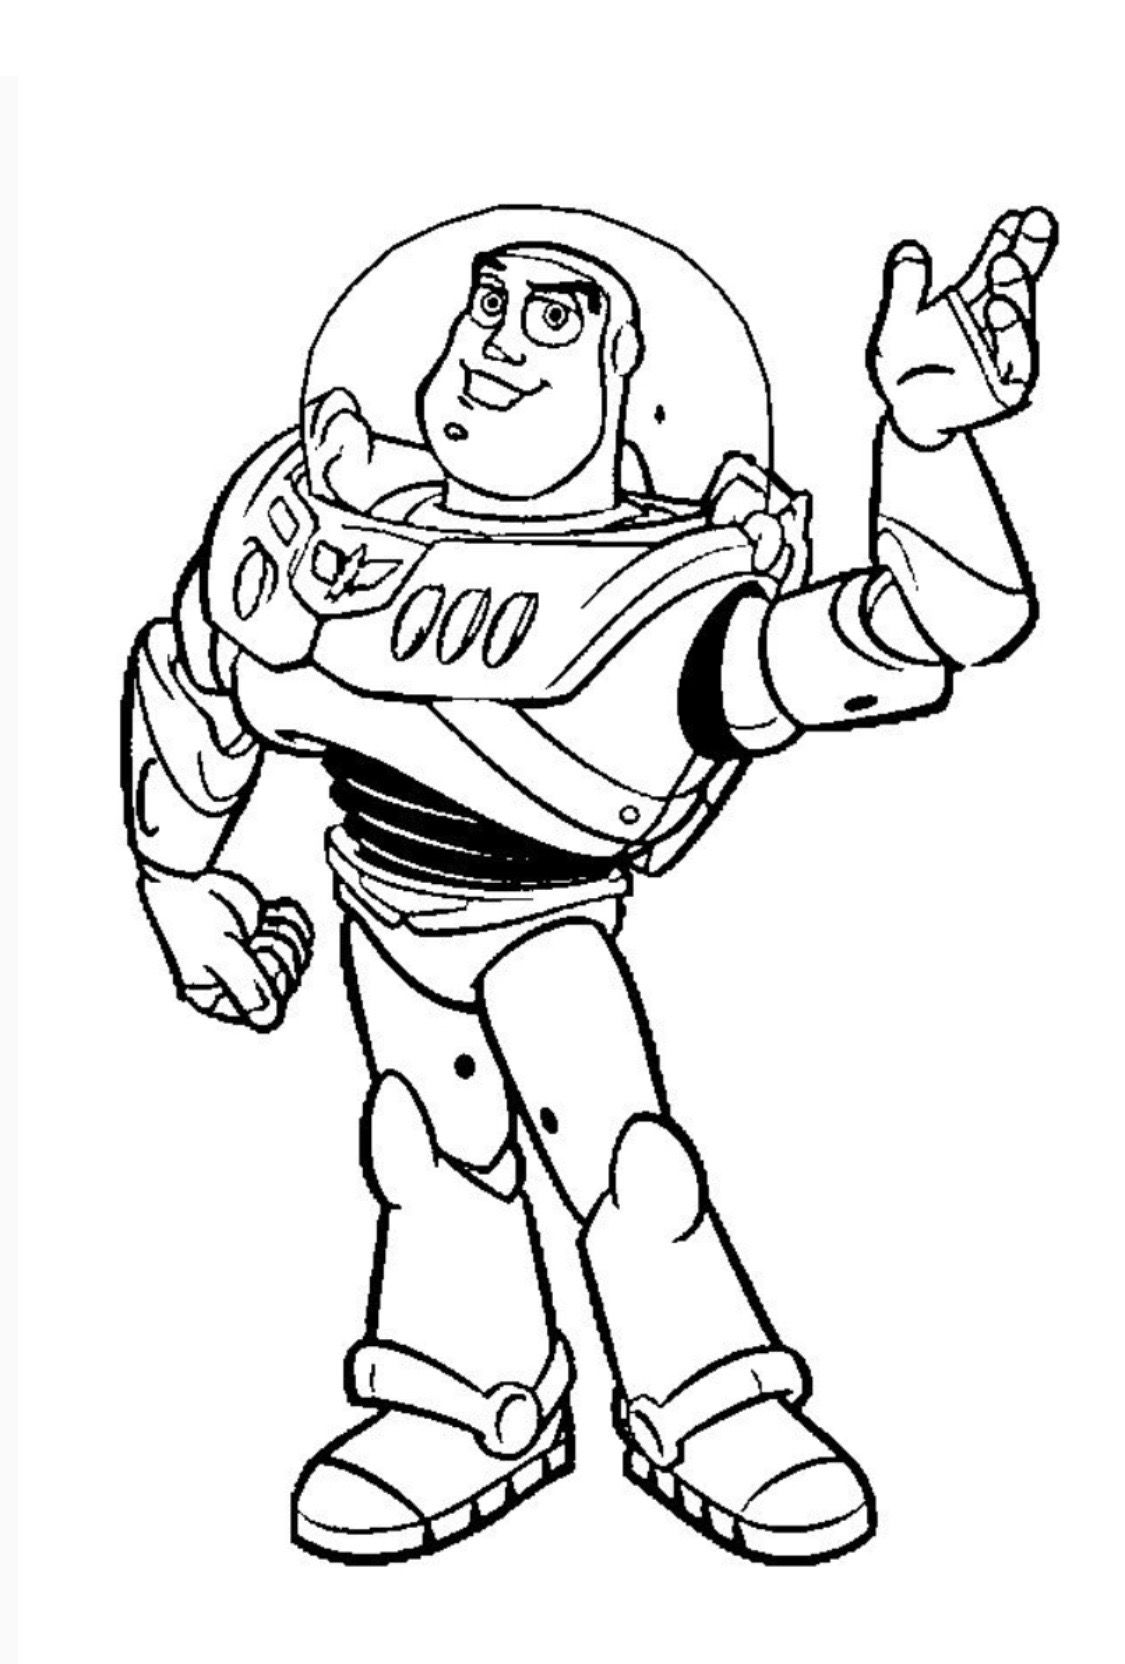 Toy Story Woody Printable Coloring Pages - Get Coloring Pages | 1664x1125